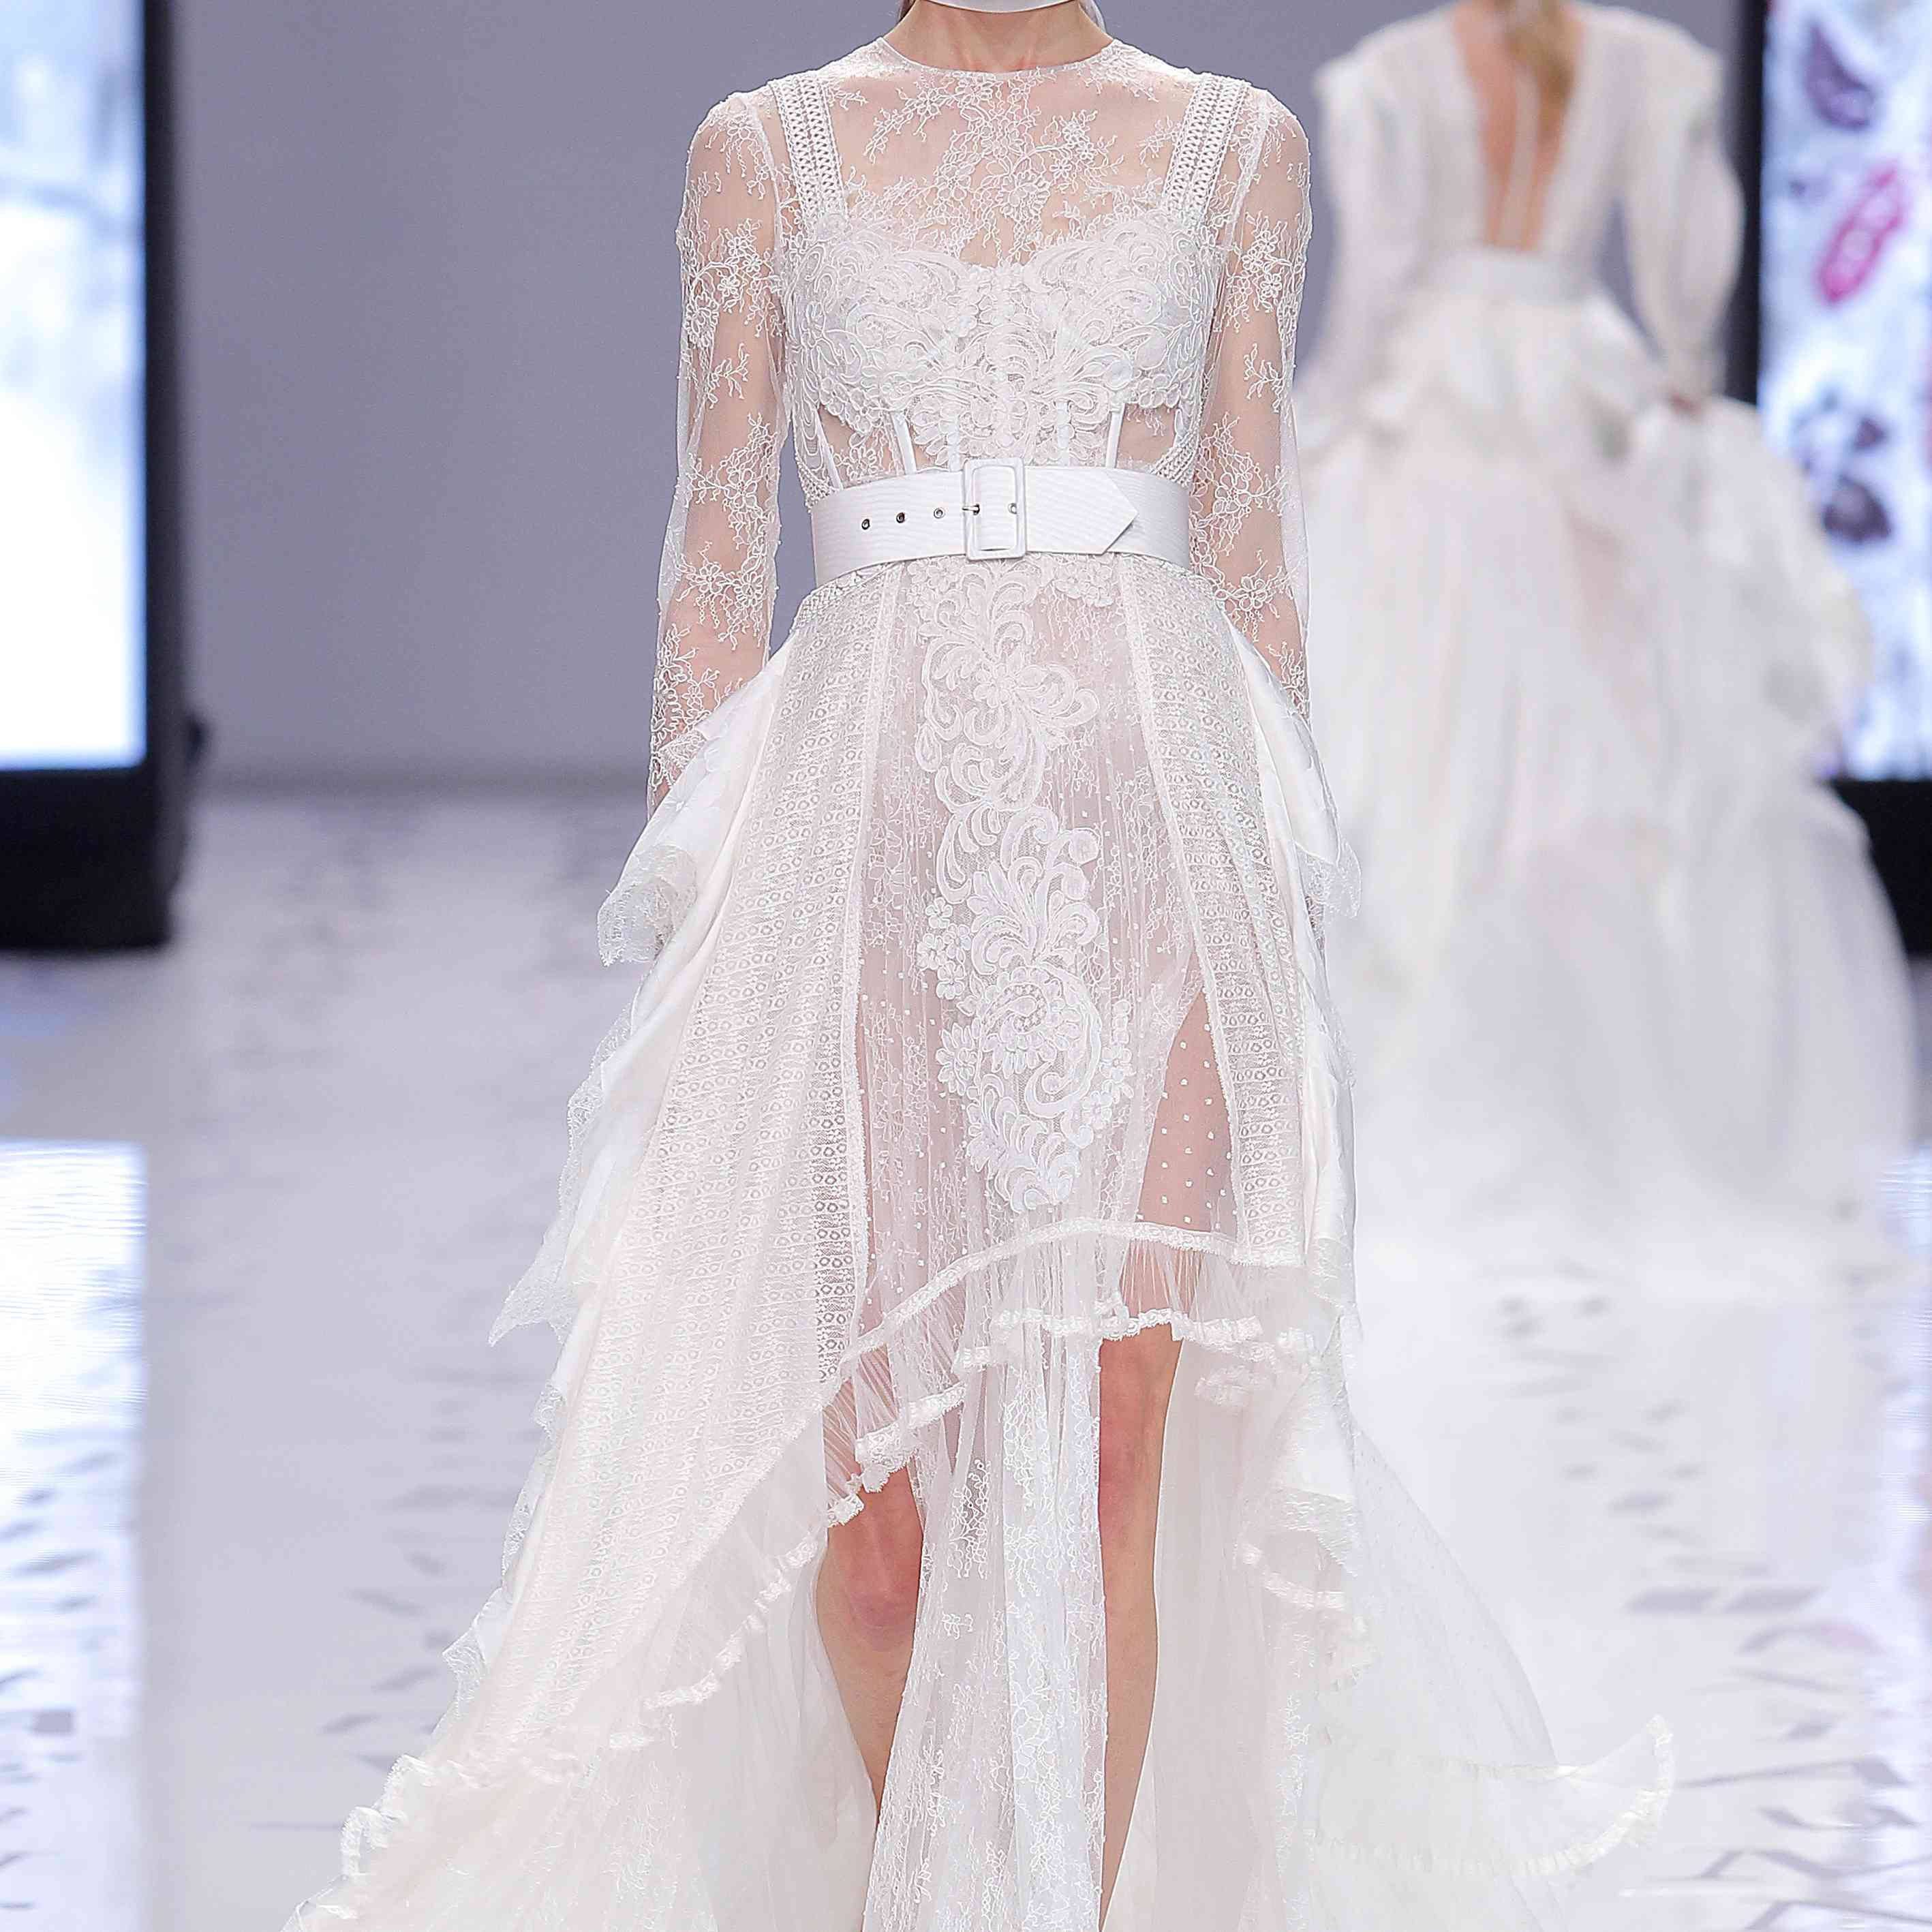 Model in long-sleeve allover lace high-low gown with a white belt